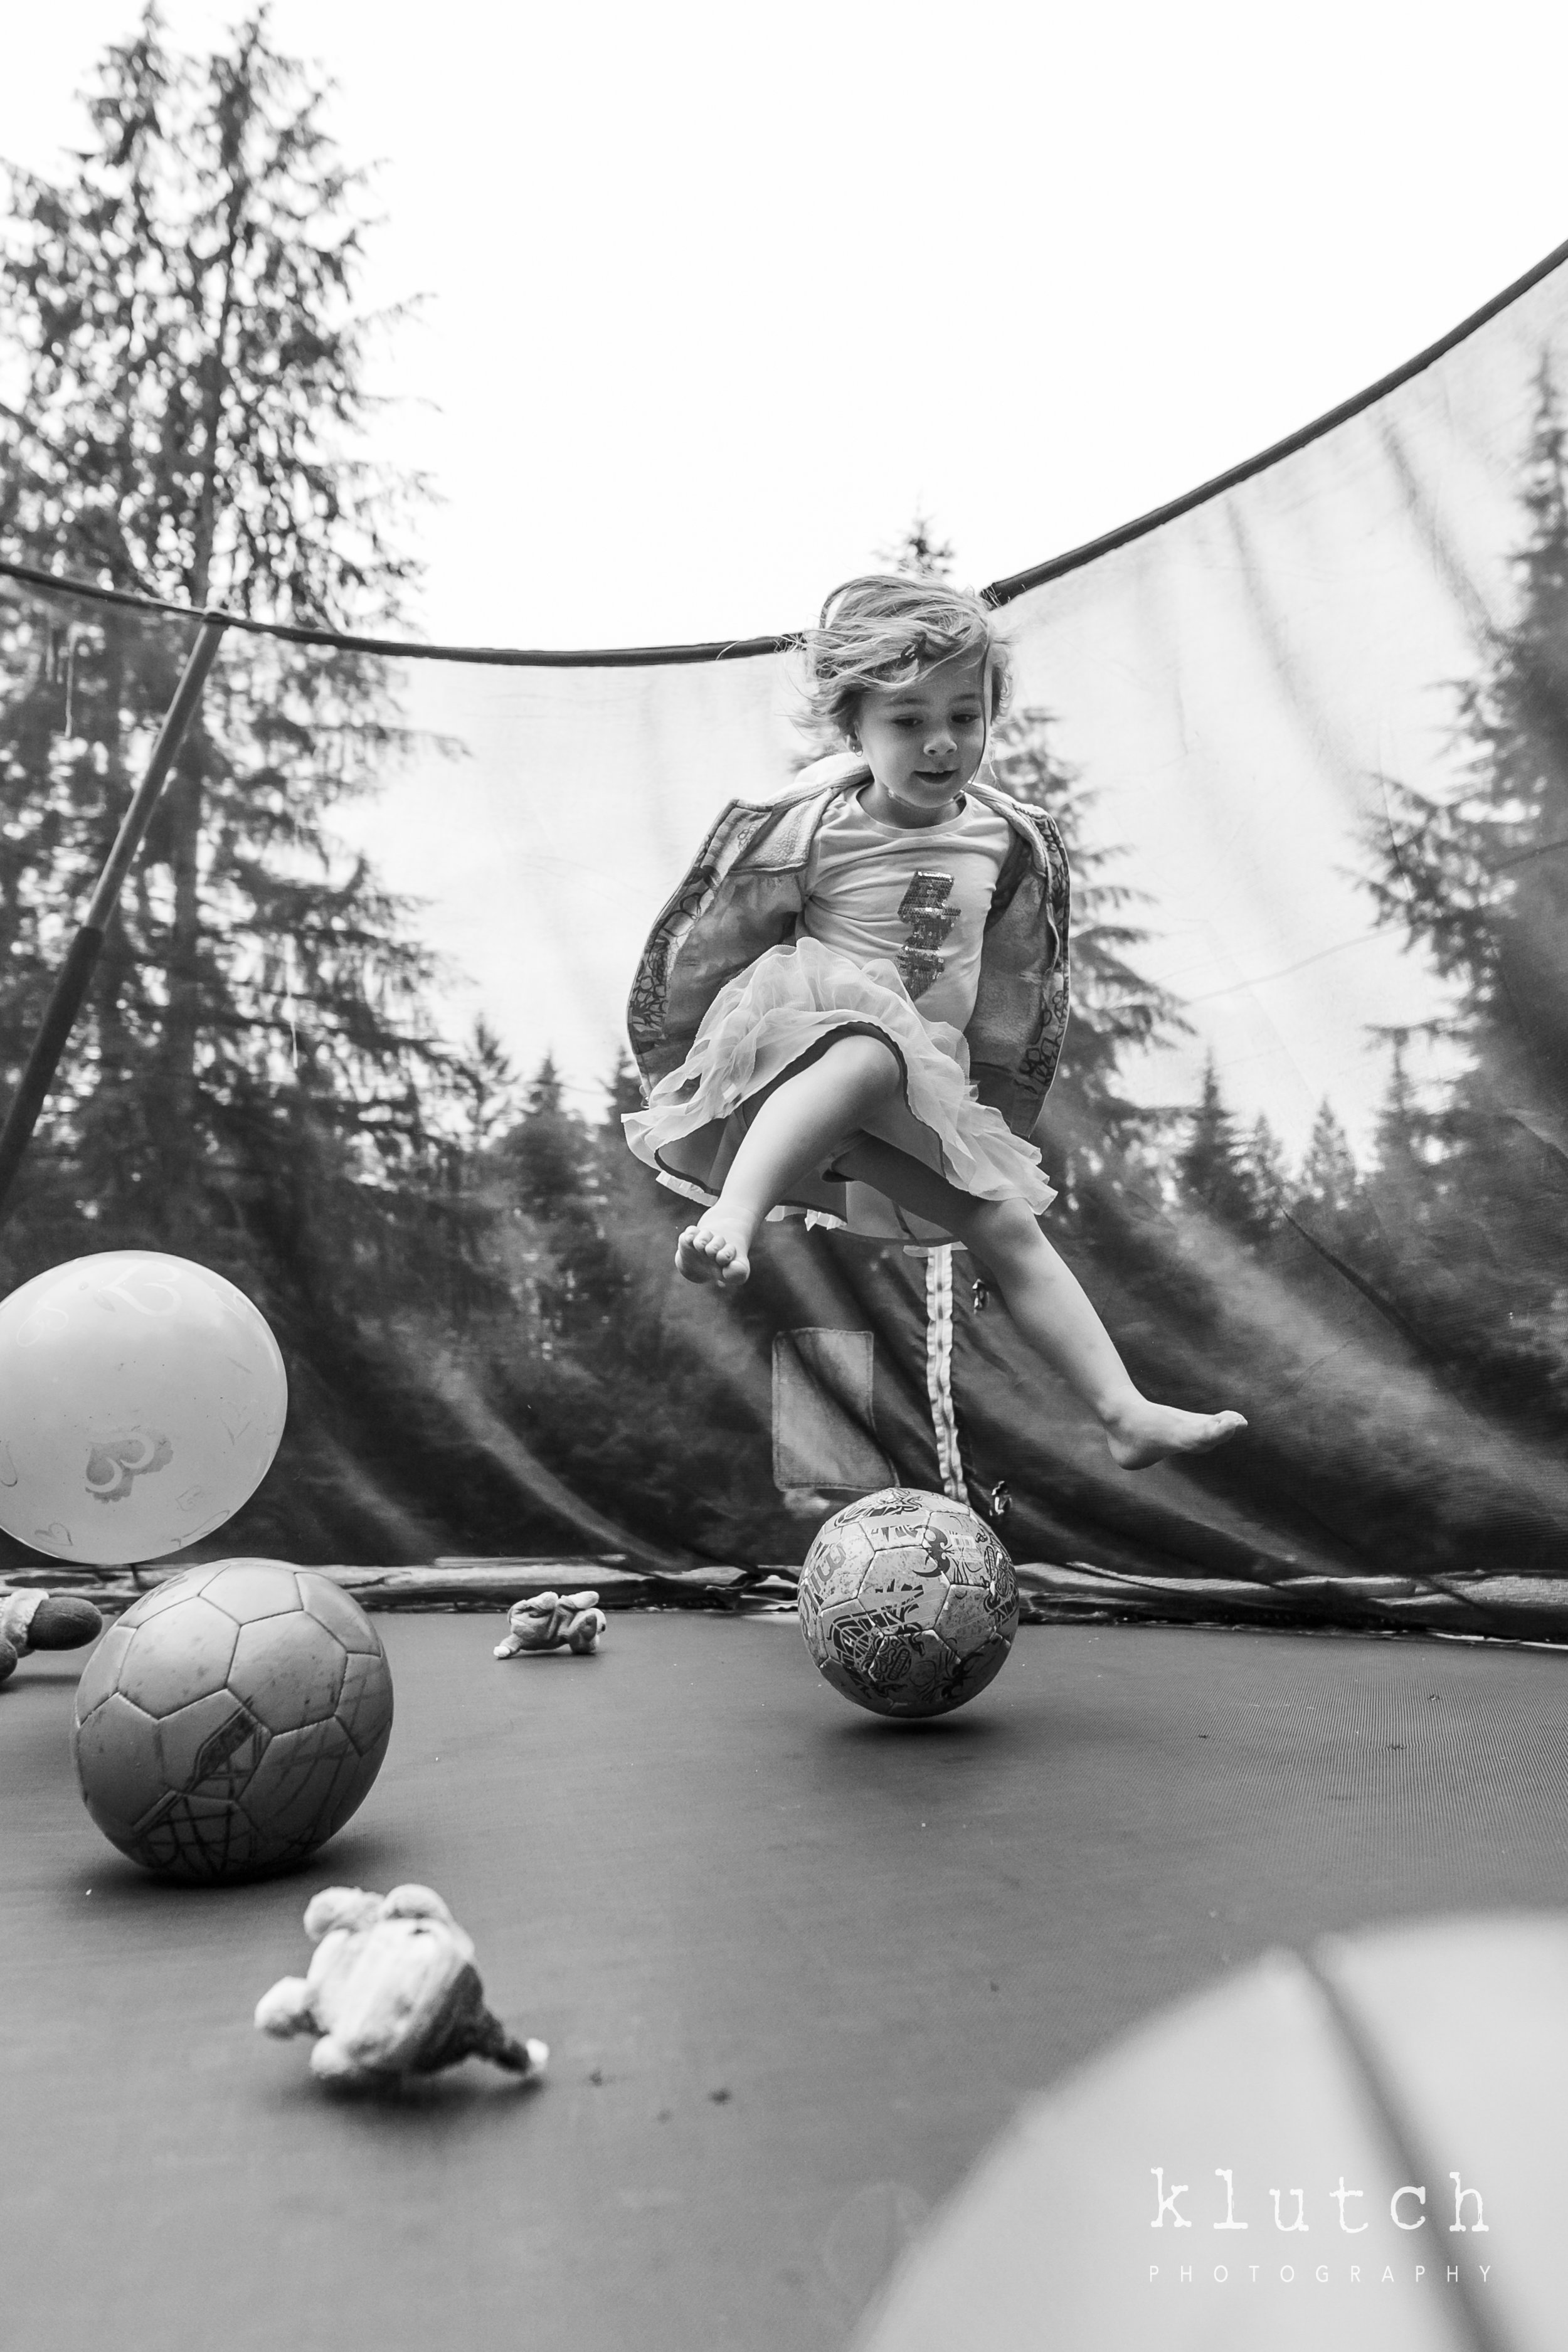 Surrey Family Photographer. Vancouver family photographer, klutch Photography, documentary photography, Vancouver documentary photographer, candid photography, lifestyle photographer, a day in the life session, family photography, Vancouver Photographer, Surrey Family Photographer, White Rock family Photographer, Dina Ferreira Stoddard, girl bouncing with balls on trampoline-0003.jpg